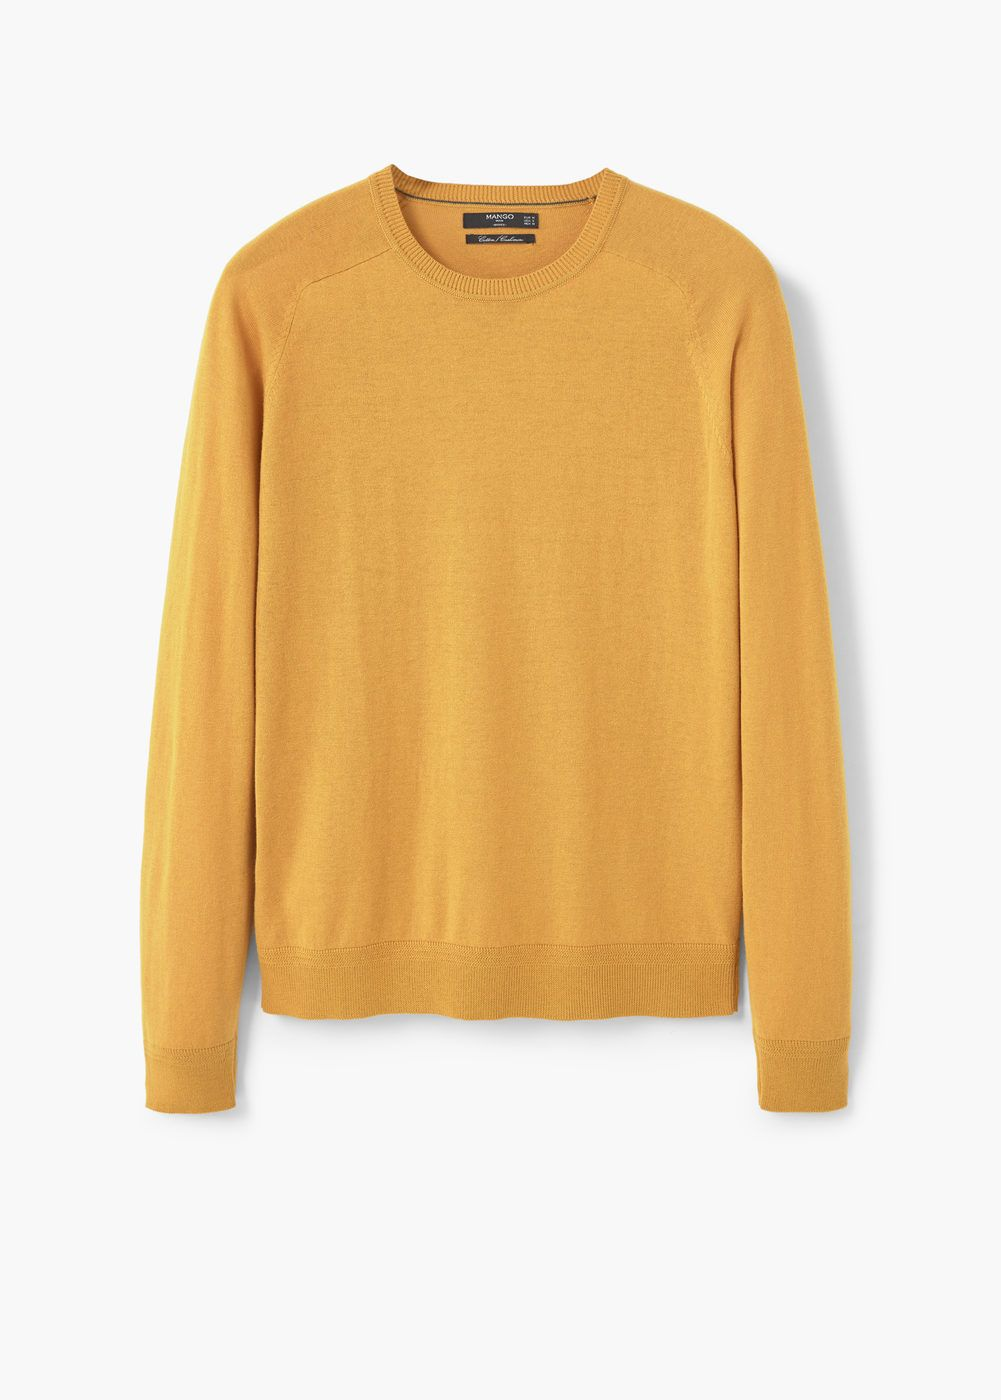 Cotton cashmere-blend sweater | Clothing, Cardigans and Mango